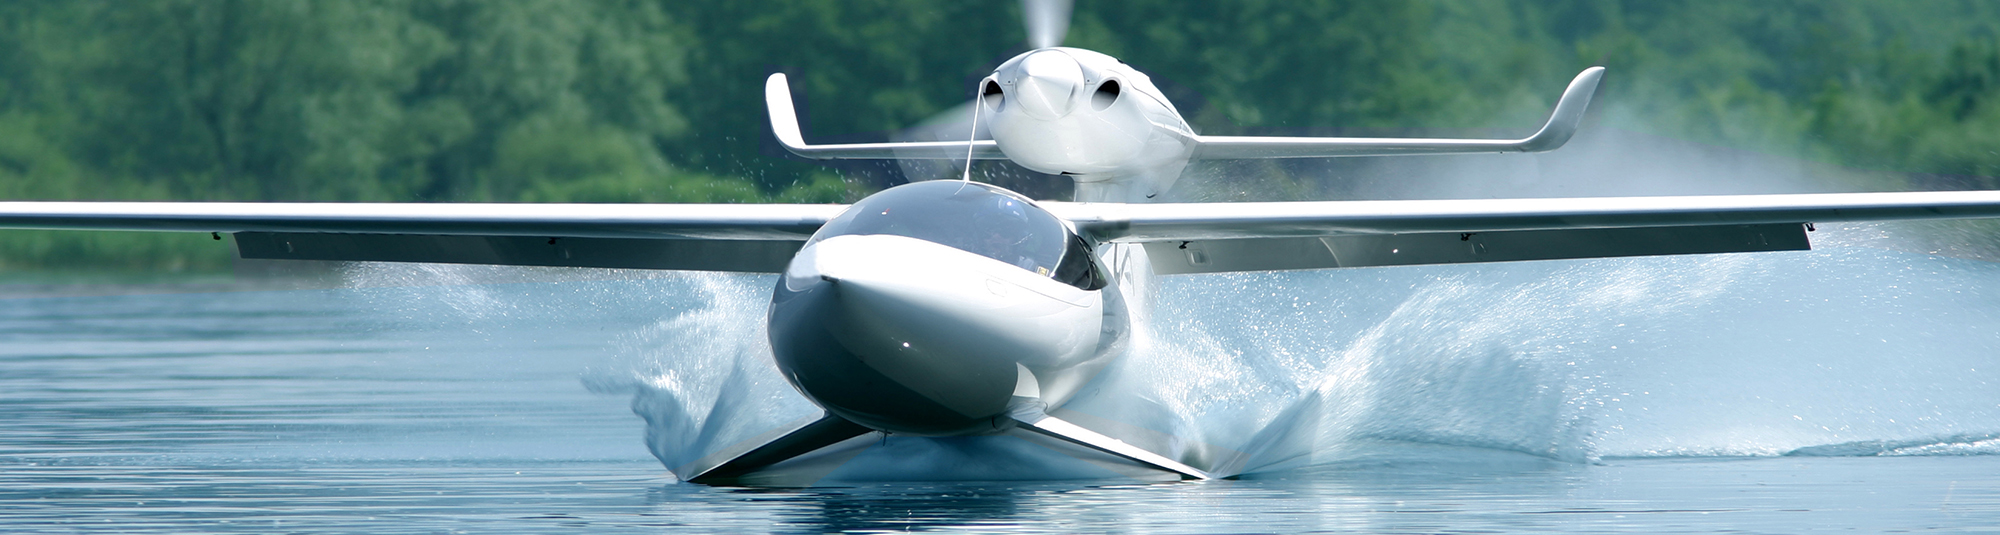 High performance amphibious airplane thanks to hydrofoils technology